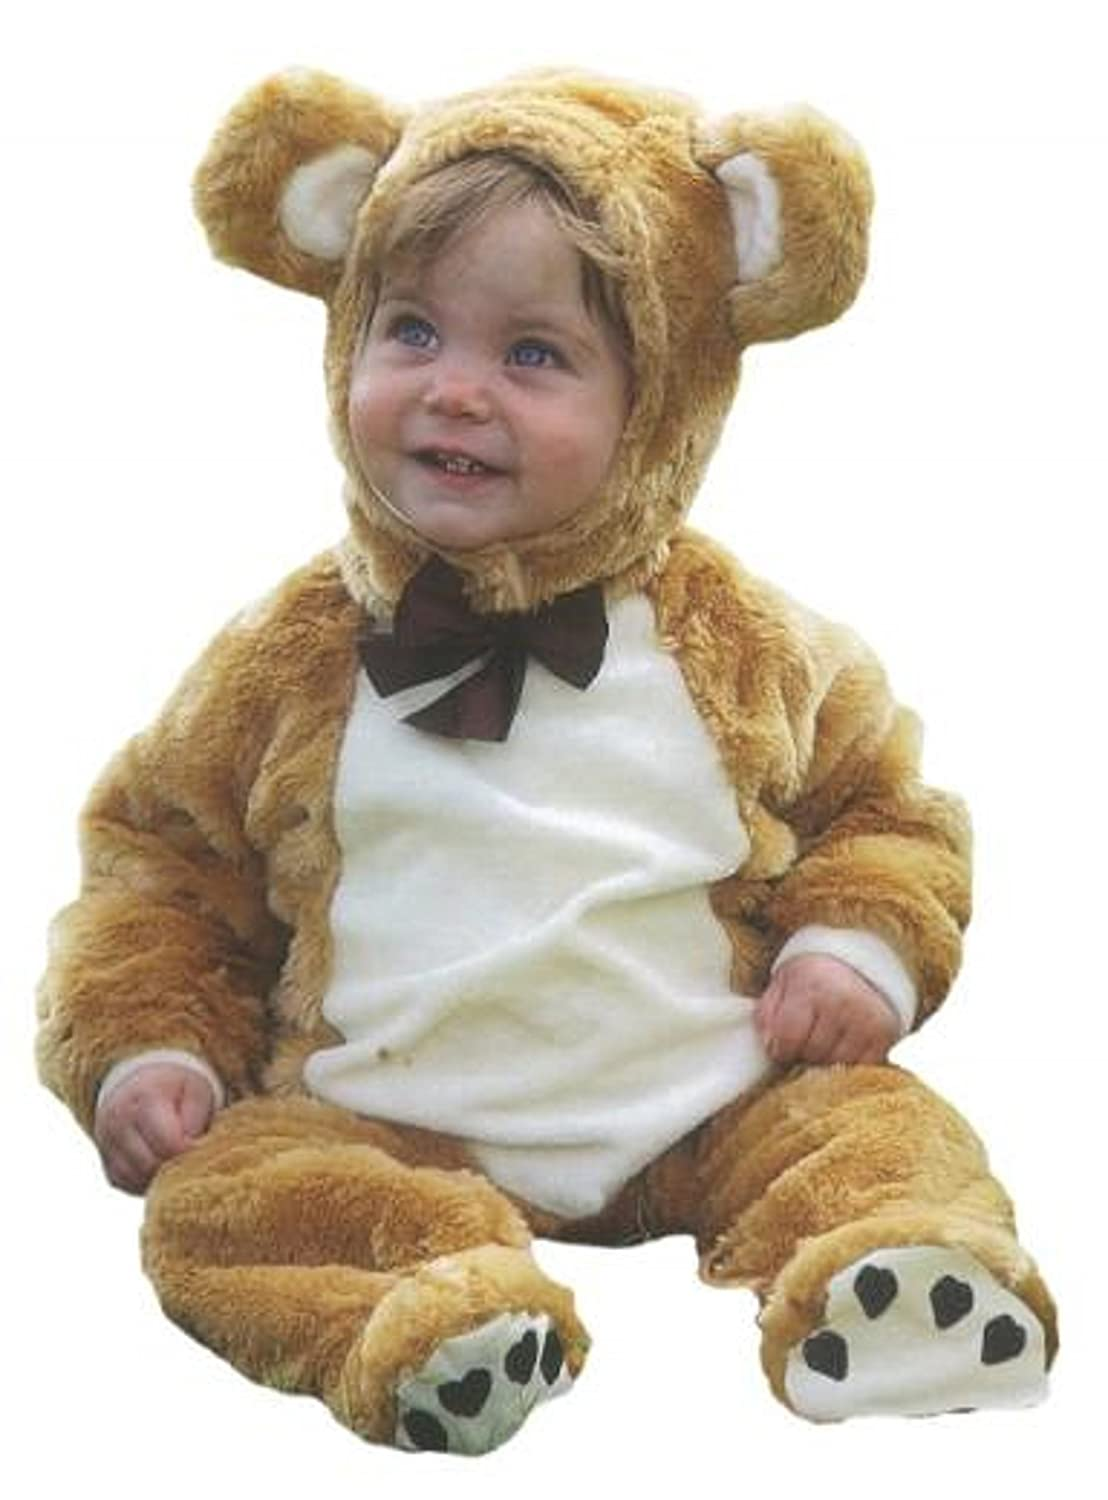 Dress Up Teddy Bear Baby/Toddler Costume 3-6 Months Travis Dress Up By Design Amazon.co.uk Baby  sc 1 st  Amazon UK & Dress Up Teddy Bear Baby/Toddler Costume 3-6 Months: Travis Dress ...